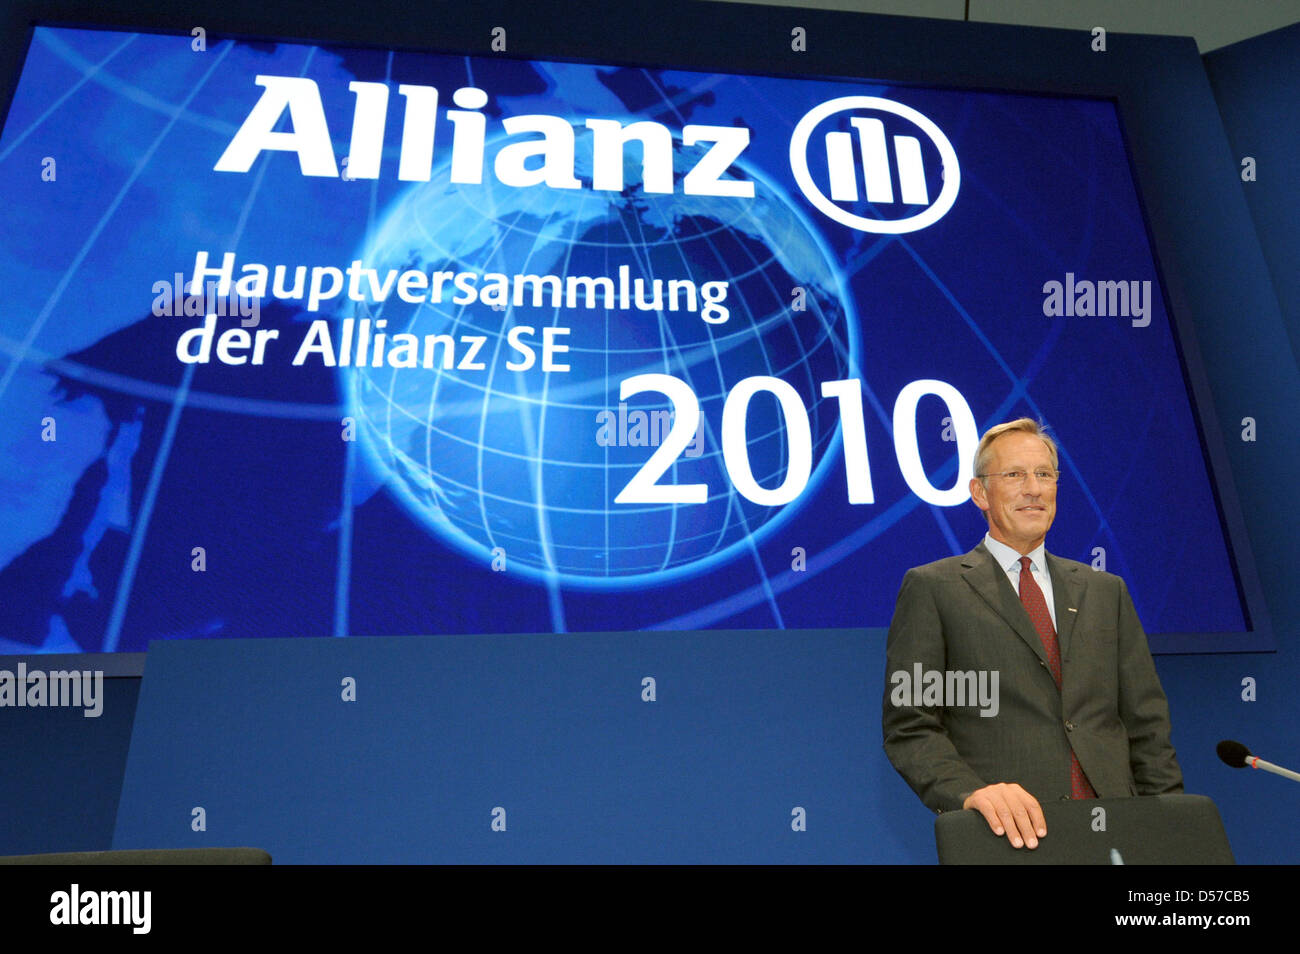 Allianz SE CEO Michael Diekmann pictured at the general meeting in Munich, Germany, 05 May 2010. The insurance giant gave a conservative outlook for the running financial year due to persistent challenging economic conditions. Allianz reports an operative result of 7.2 billion euro for 2009. Photo: TOBIAS HASE Stock Photo